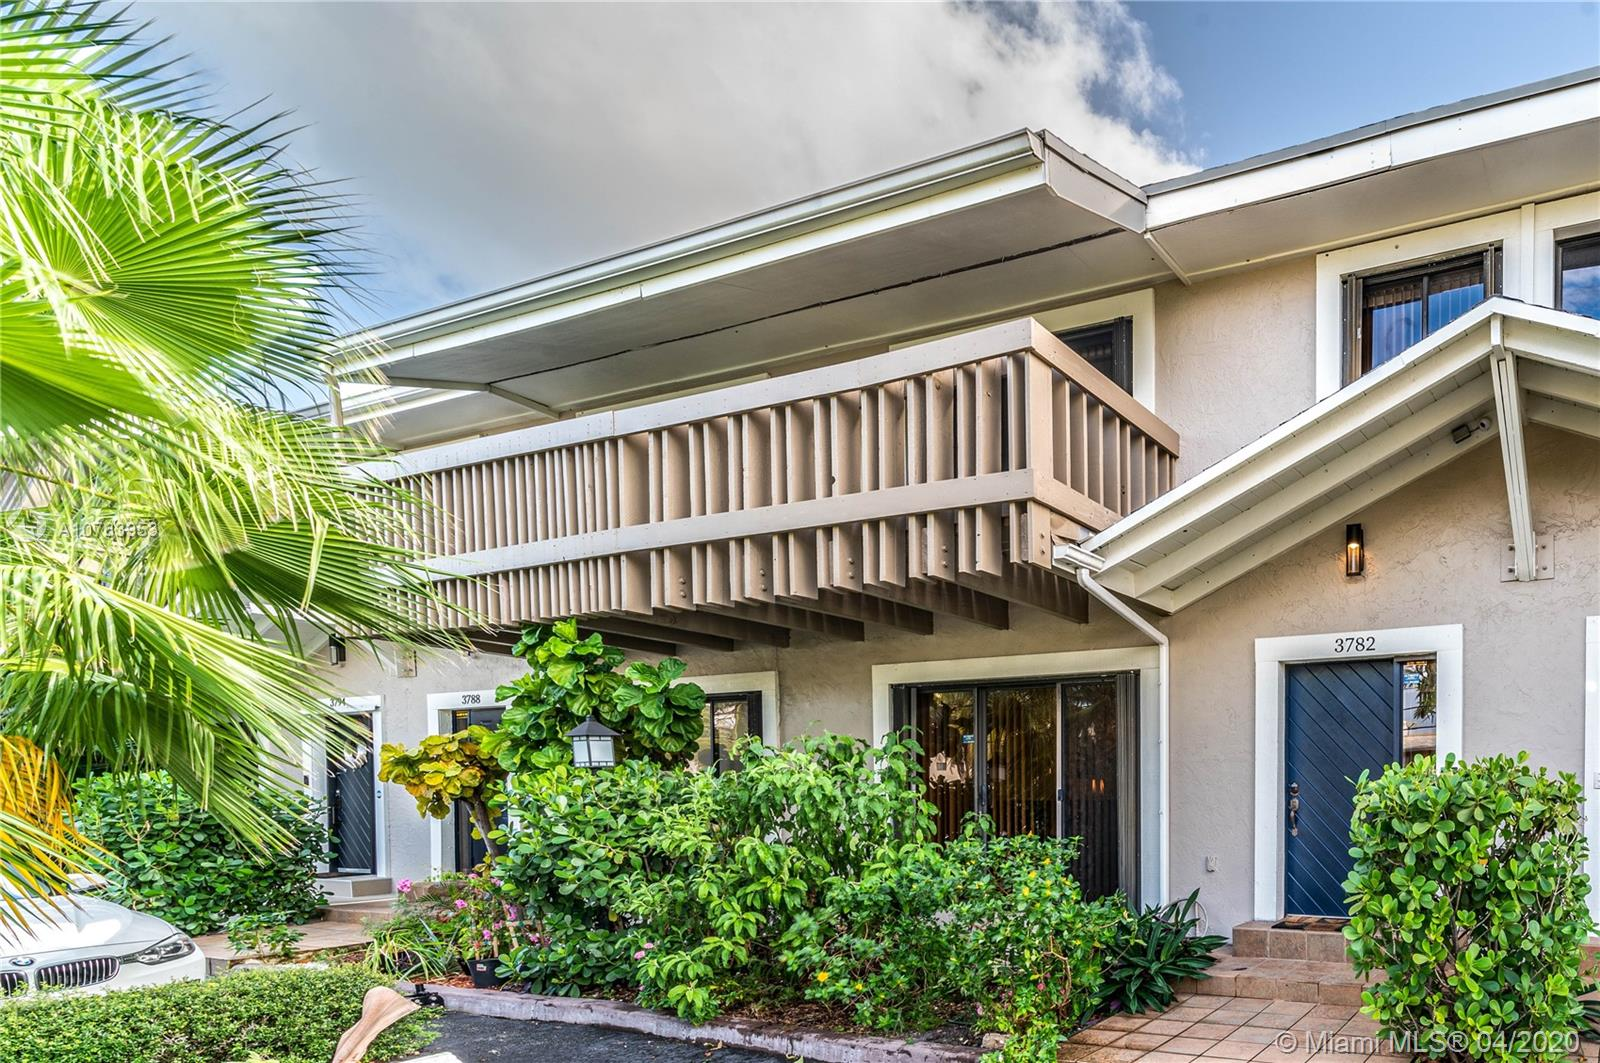 Beautiful and spacious waterfront townhome with 35 ft dock directly behind the property, close to  2,000 sq ft of living space. Access the Intracoastal and the ocean with no bridges, located only minutes away from the intracoastal waterway and 3 miles North of Haulover Inlet in N. Miami.